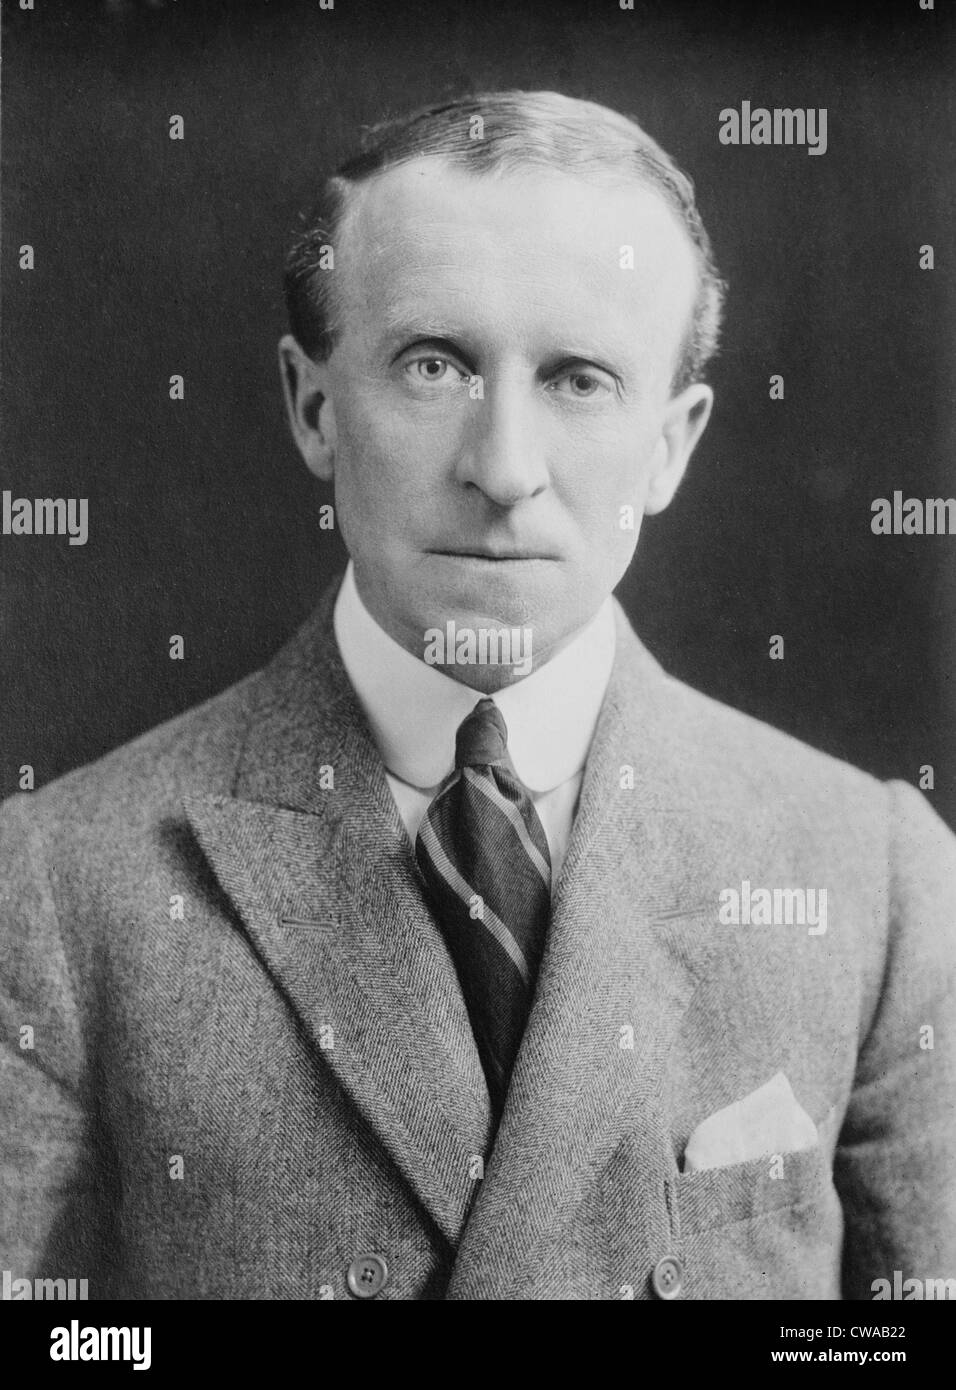 John Buchan (1875-1940) Scottish writer of over 50 adventure books, historical novels, and biographies. 'Thirty - Stock Image